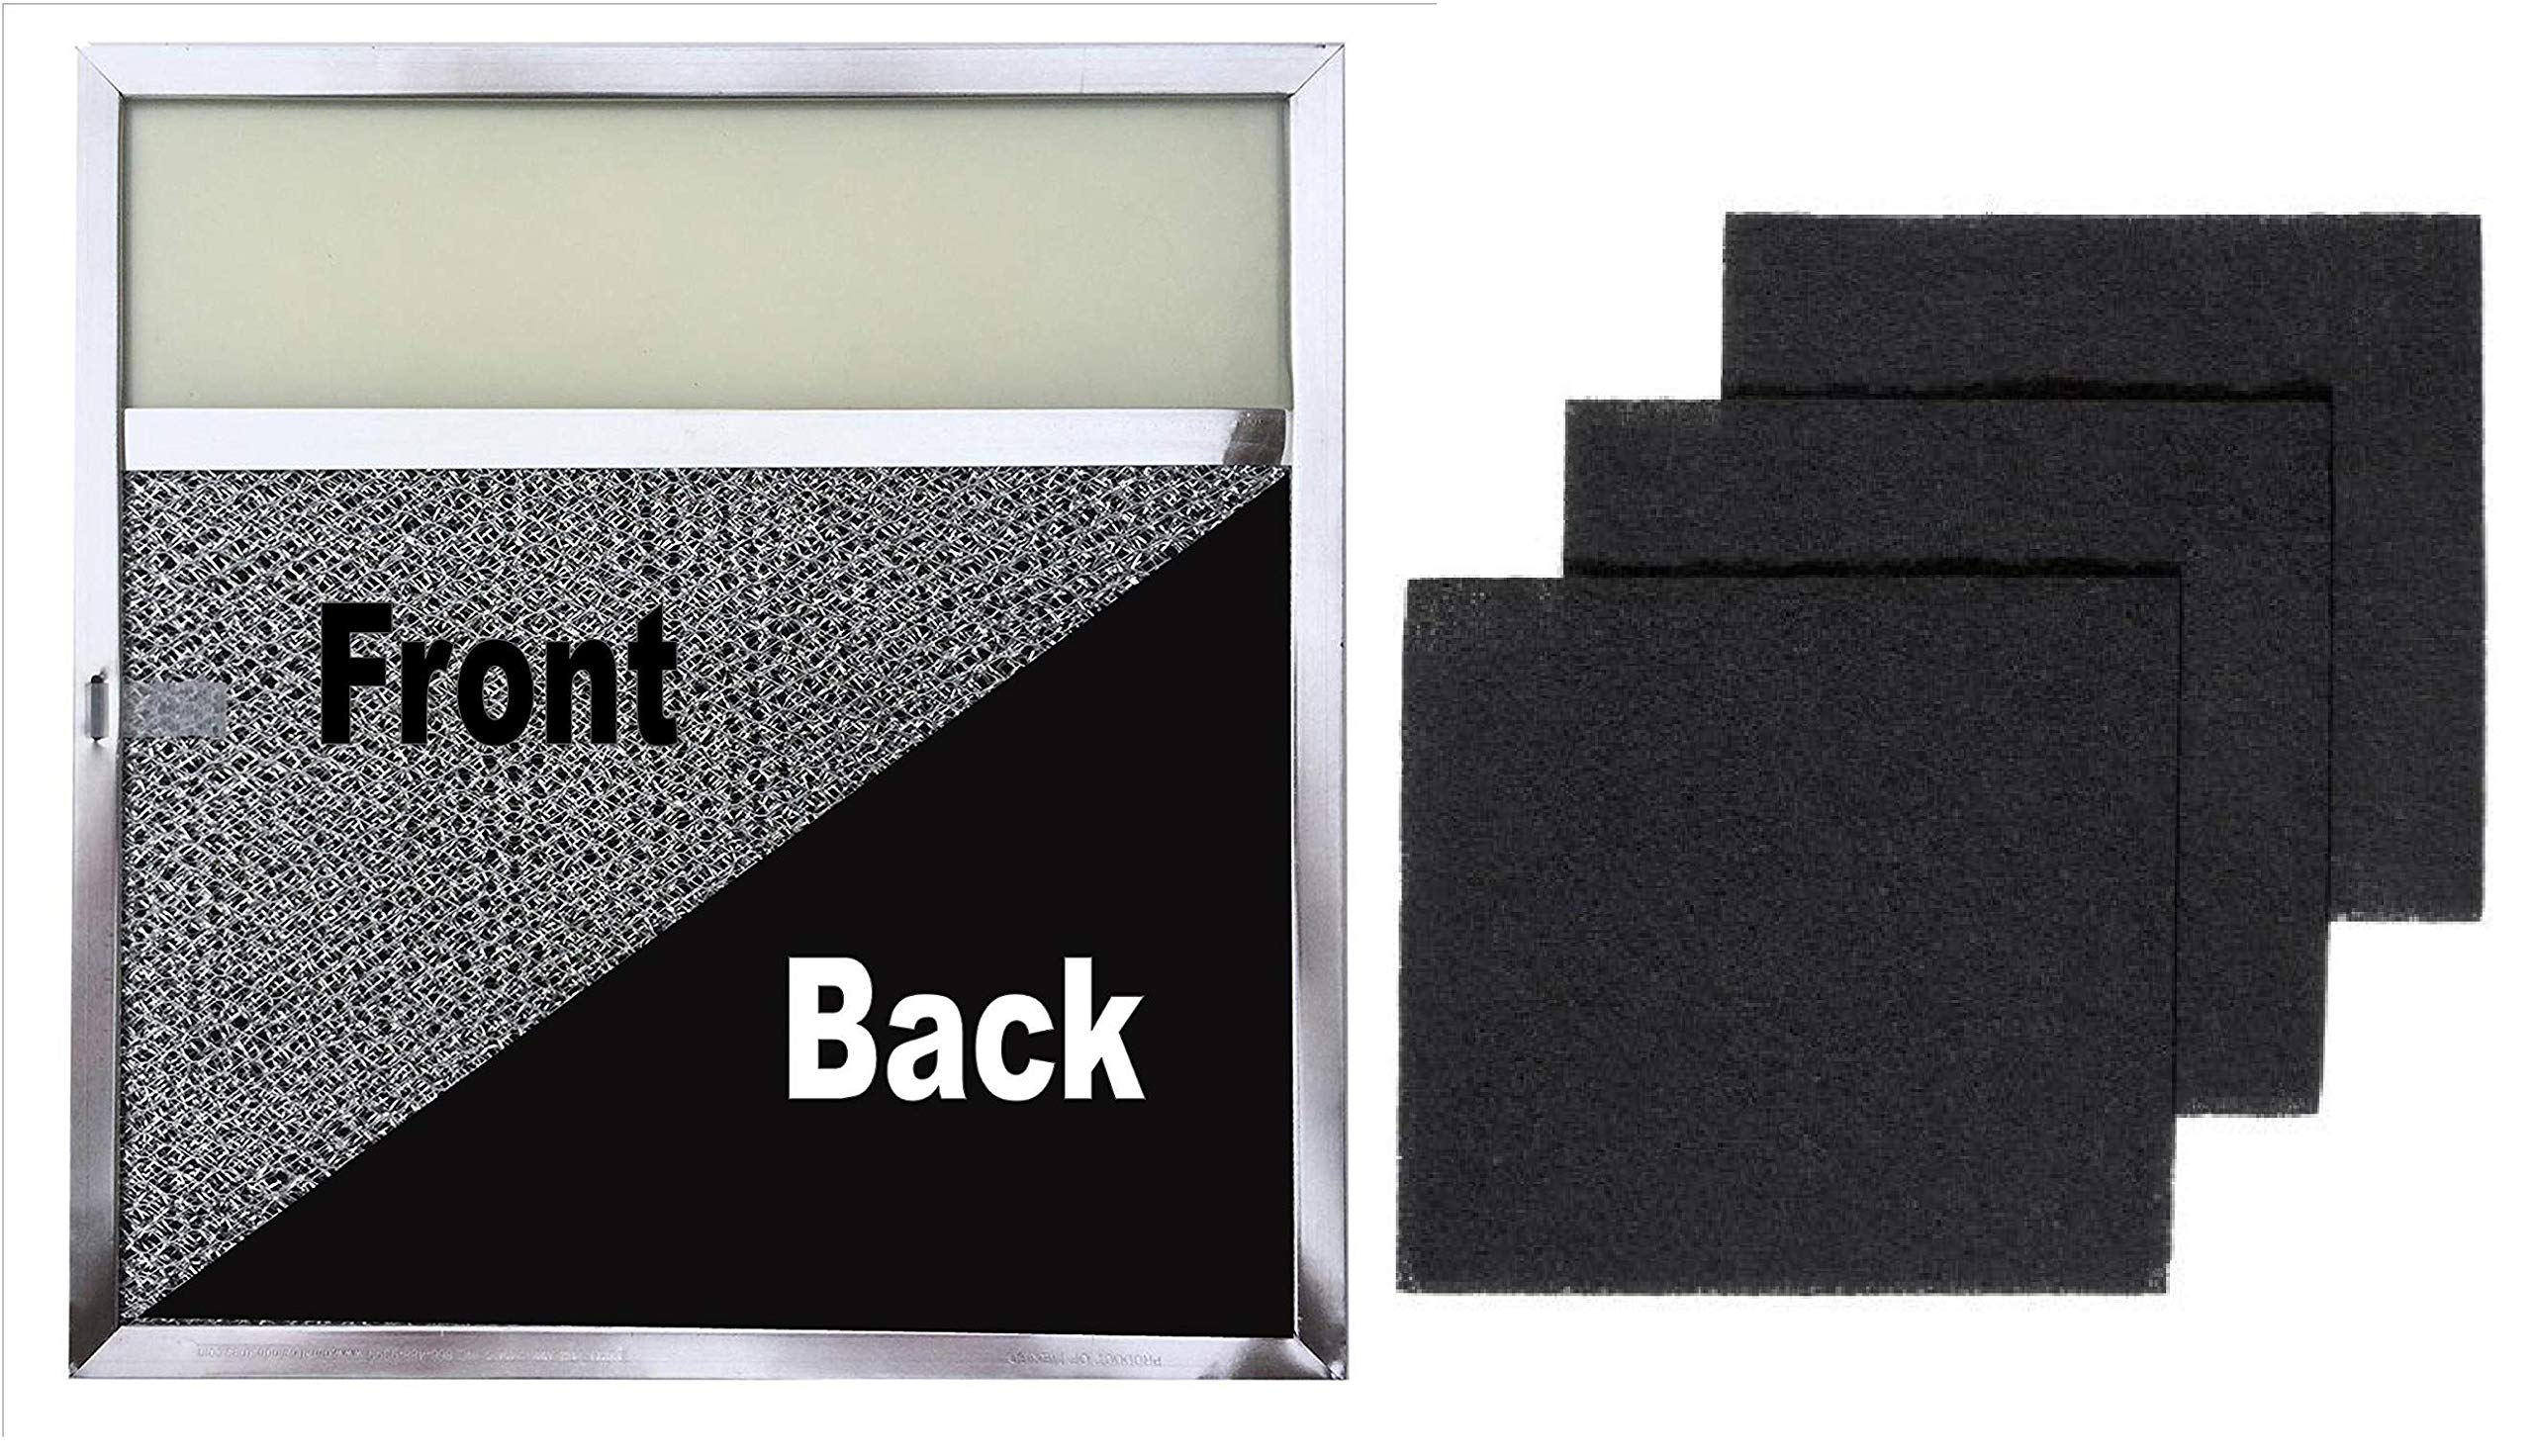 Range Filter with Lens Light + Replacement Charcoal Filters (3 Pack)   11.5 x 11.75 x .375 with Ligh